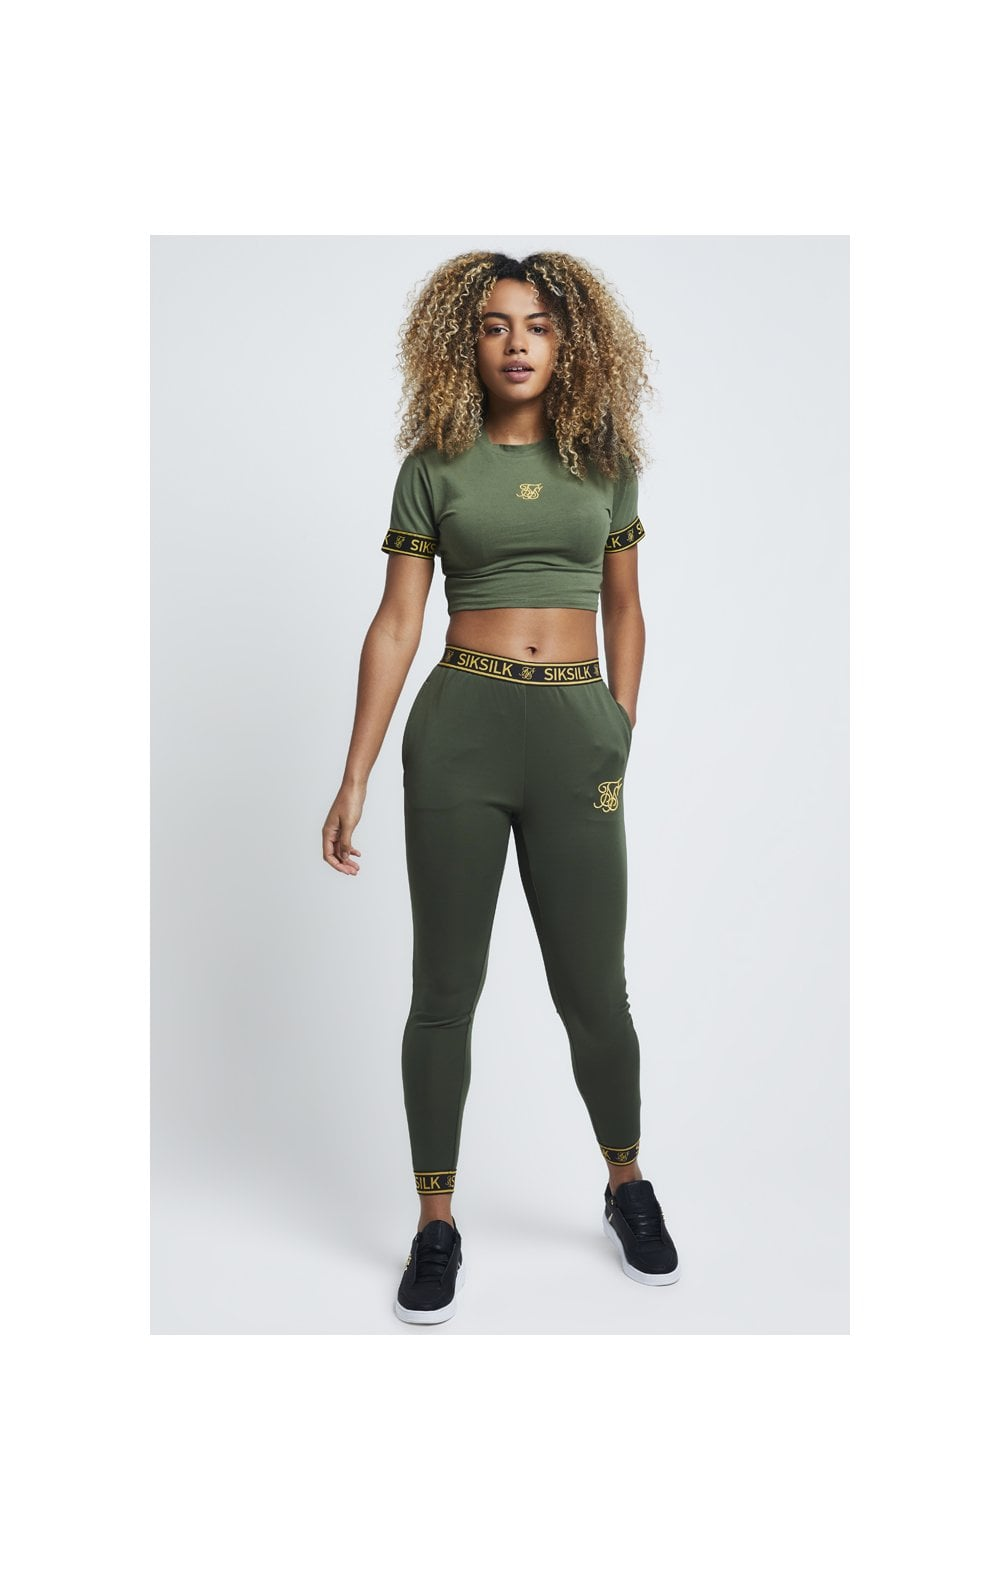 Load image into Gallery viewer, SikSilk Tape Cuff Crop Tee - Bronze Green (2)